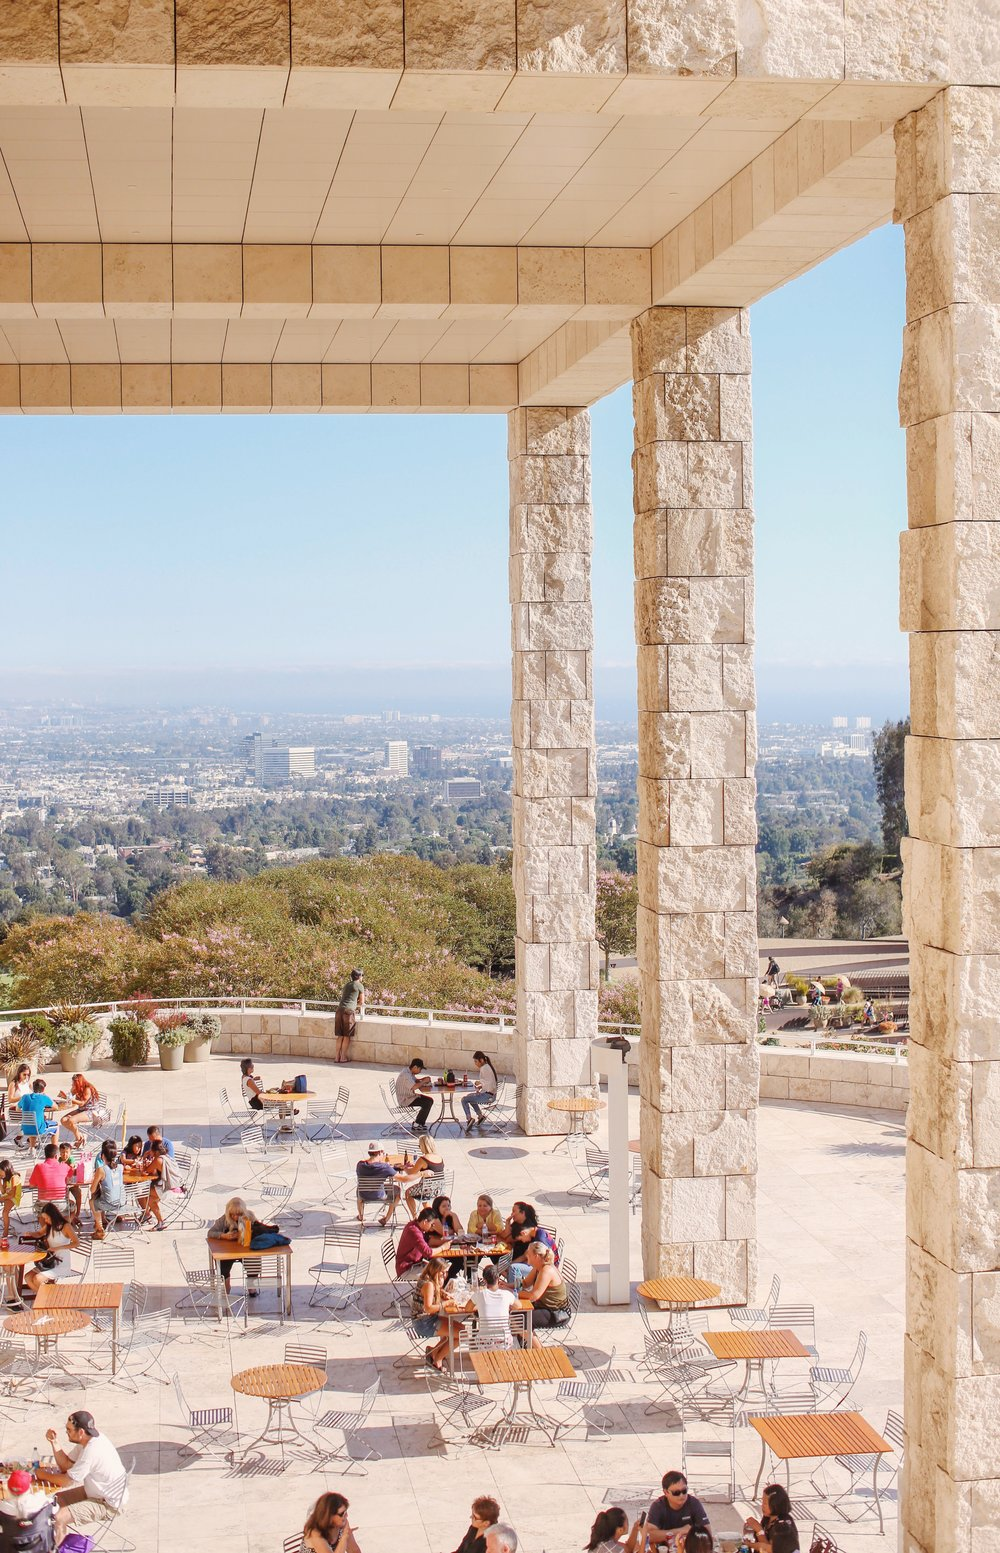 Getty Museum, Los Angeles, California  August 2016